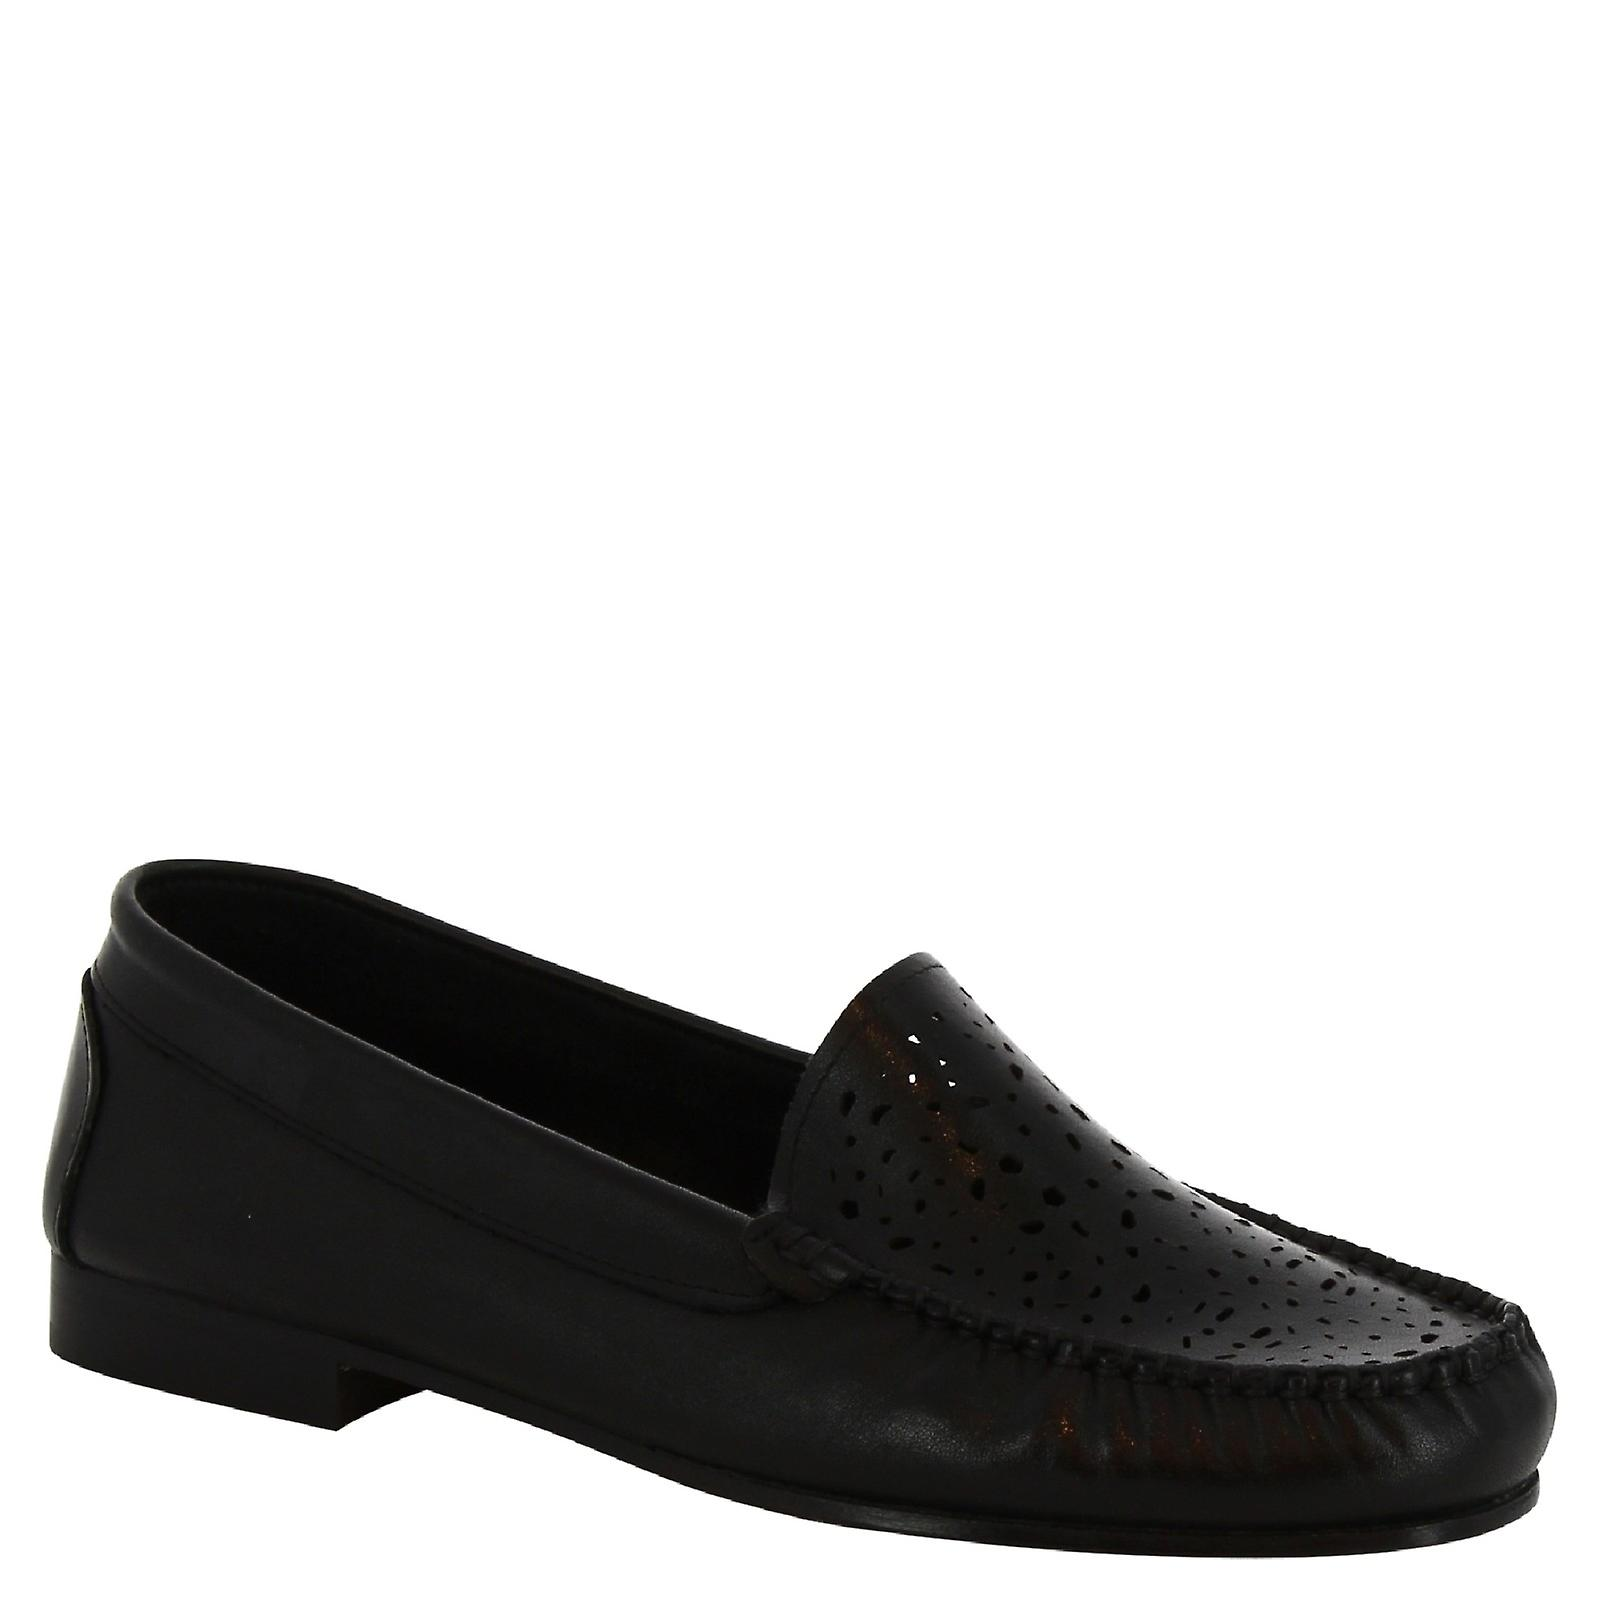 Leonardo Shoes Women's handmade loafers shoes in openwork black calf leather 0V7Rx